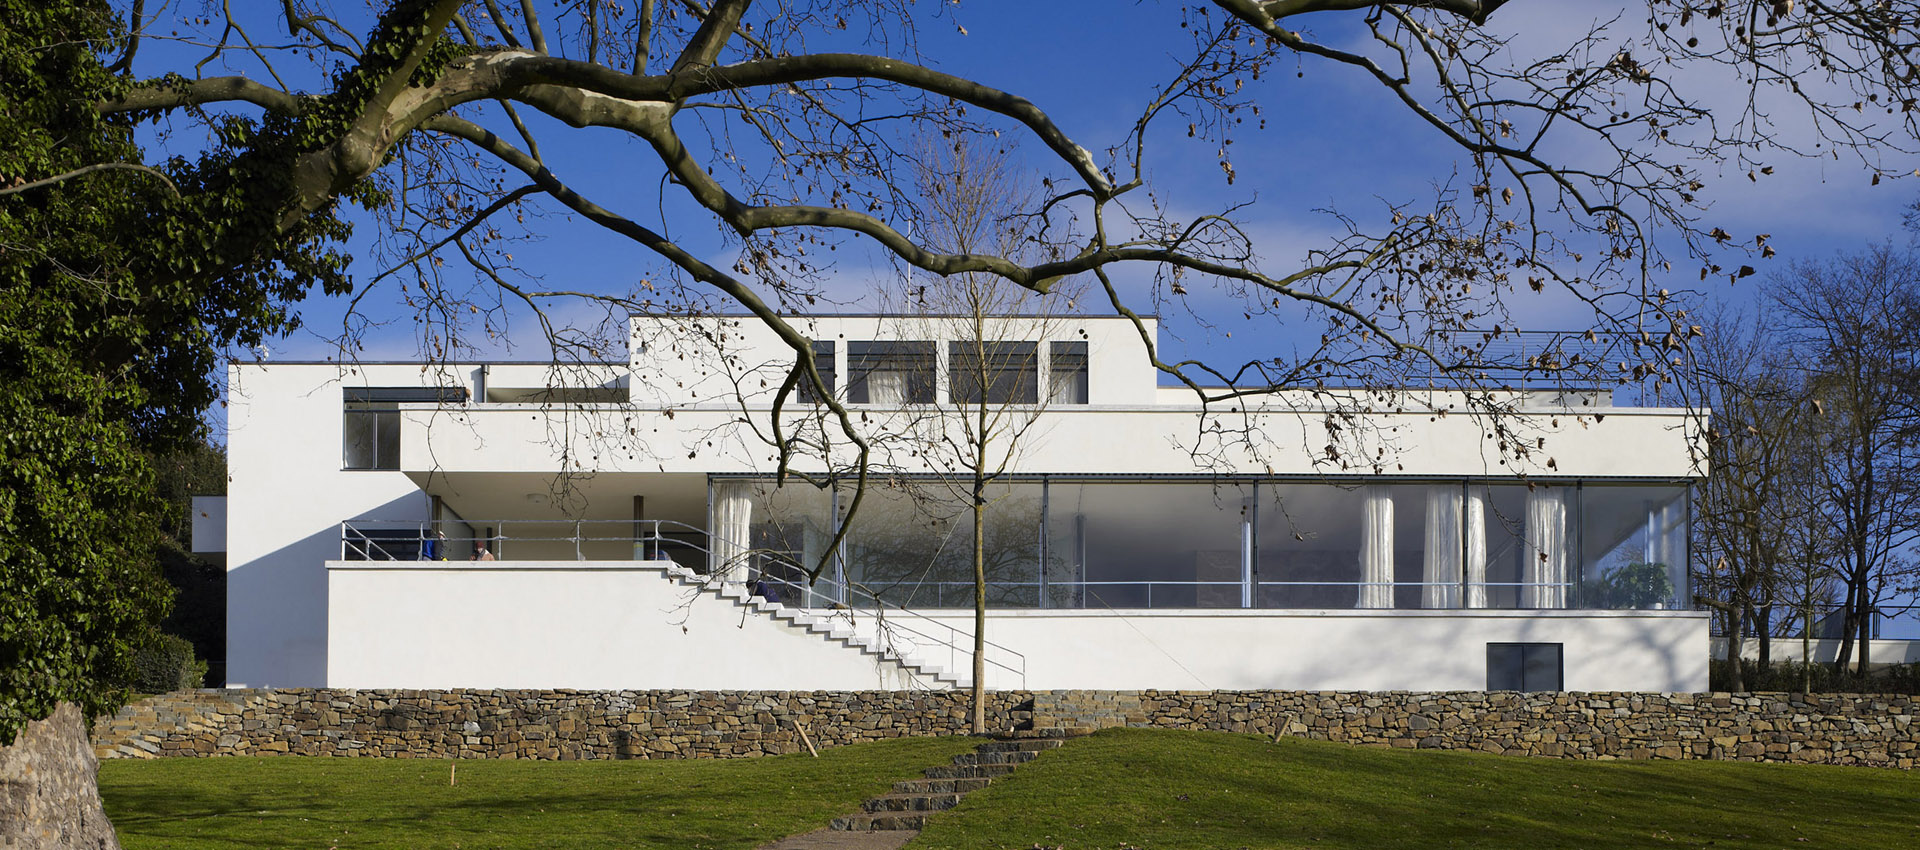 Exterior view. Tugendhat House by Ludwig Mies van der Rohe. Photography © David Židlický